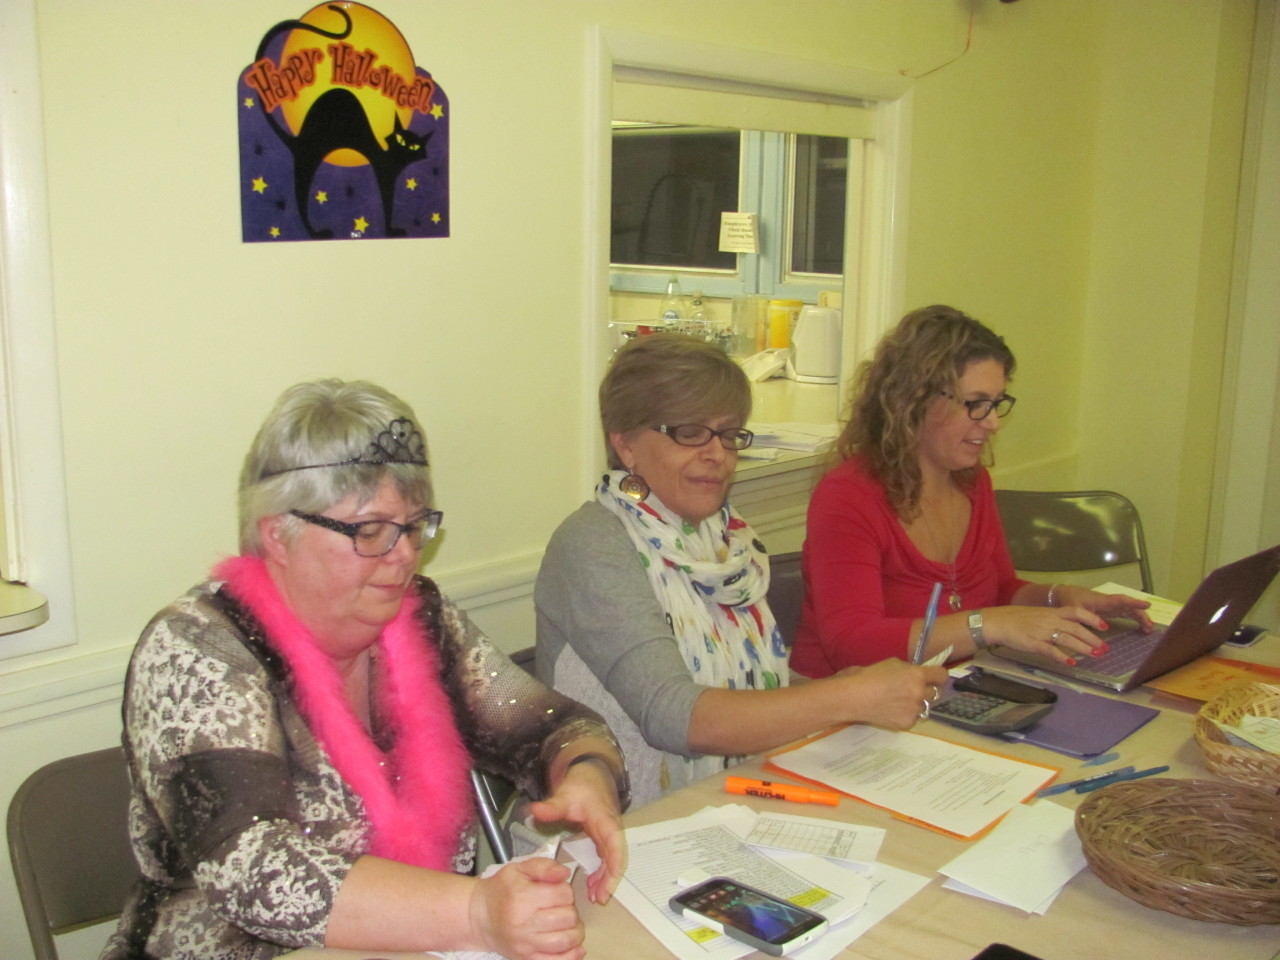 Check out team in action at the Silent Auction, October 31 2015